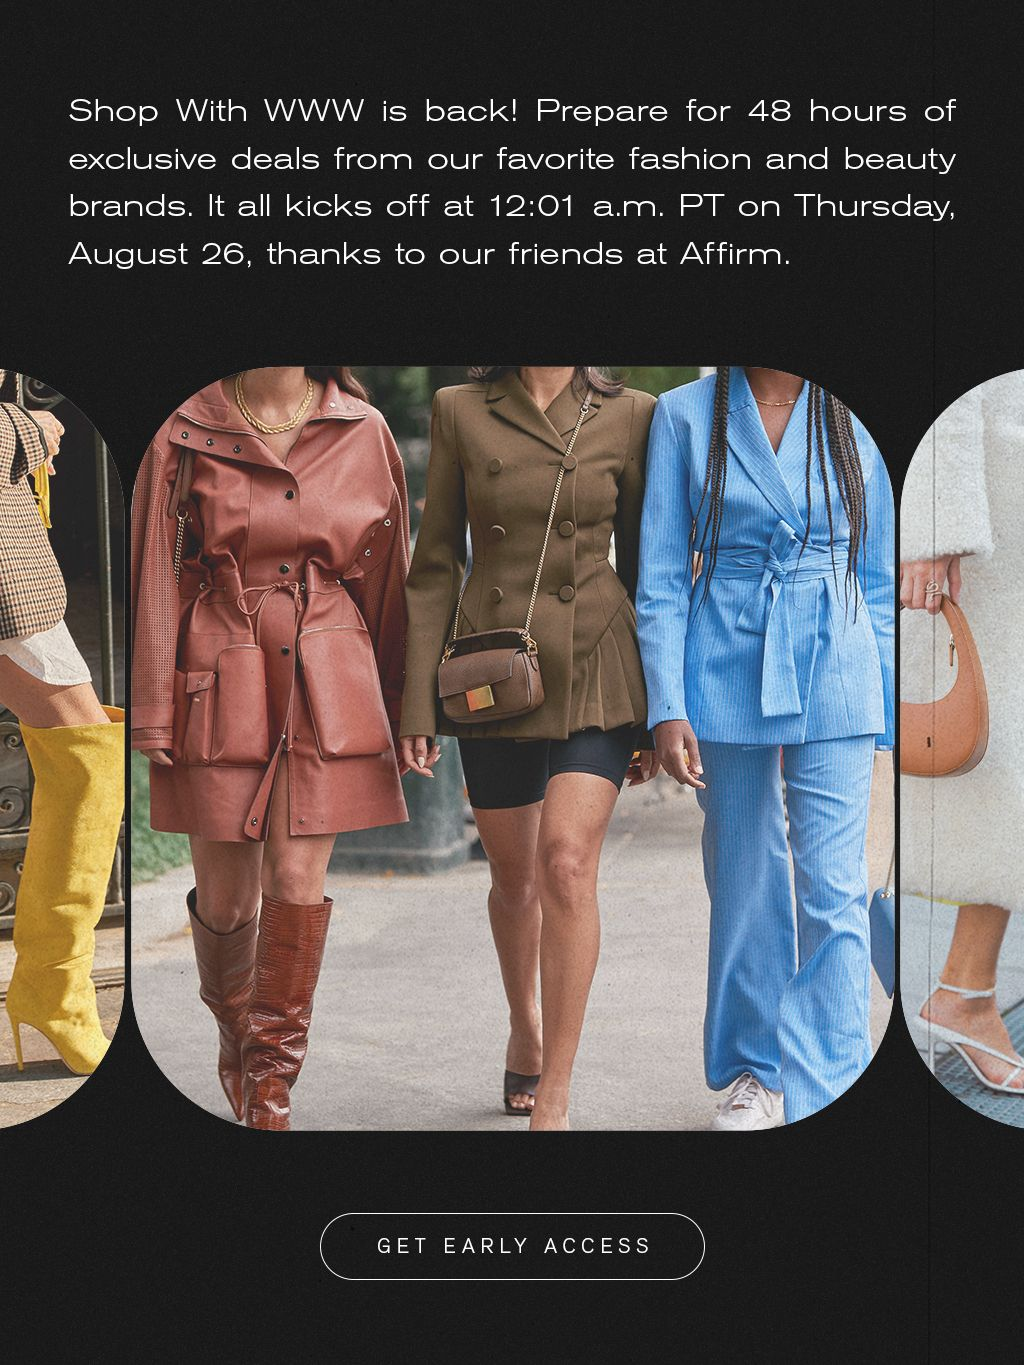 30 Discounted Items I'm Excited to Buy During Our Shop With WWW Event - shop with www fall fashion 294855 1629734204611